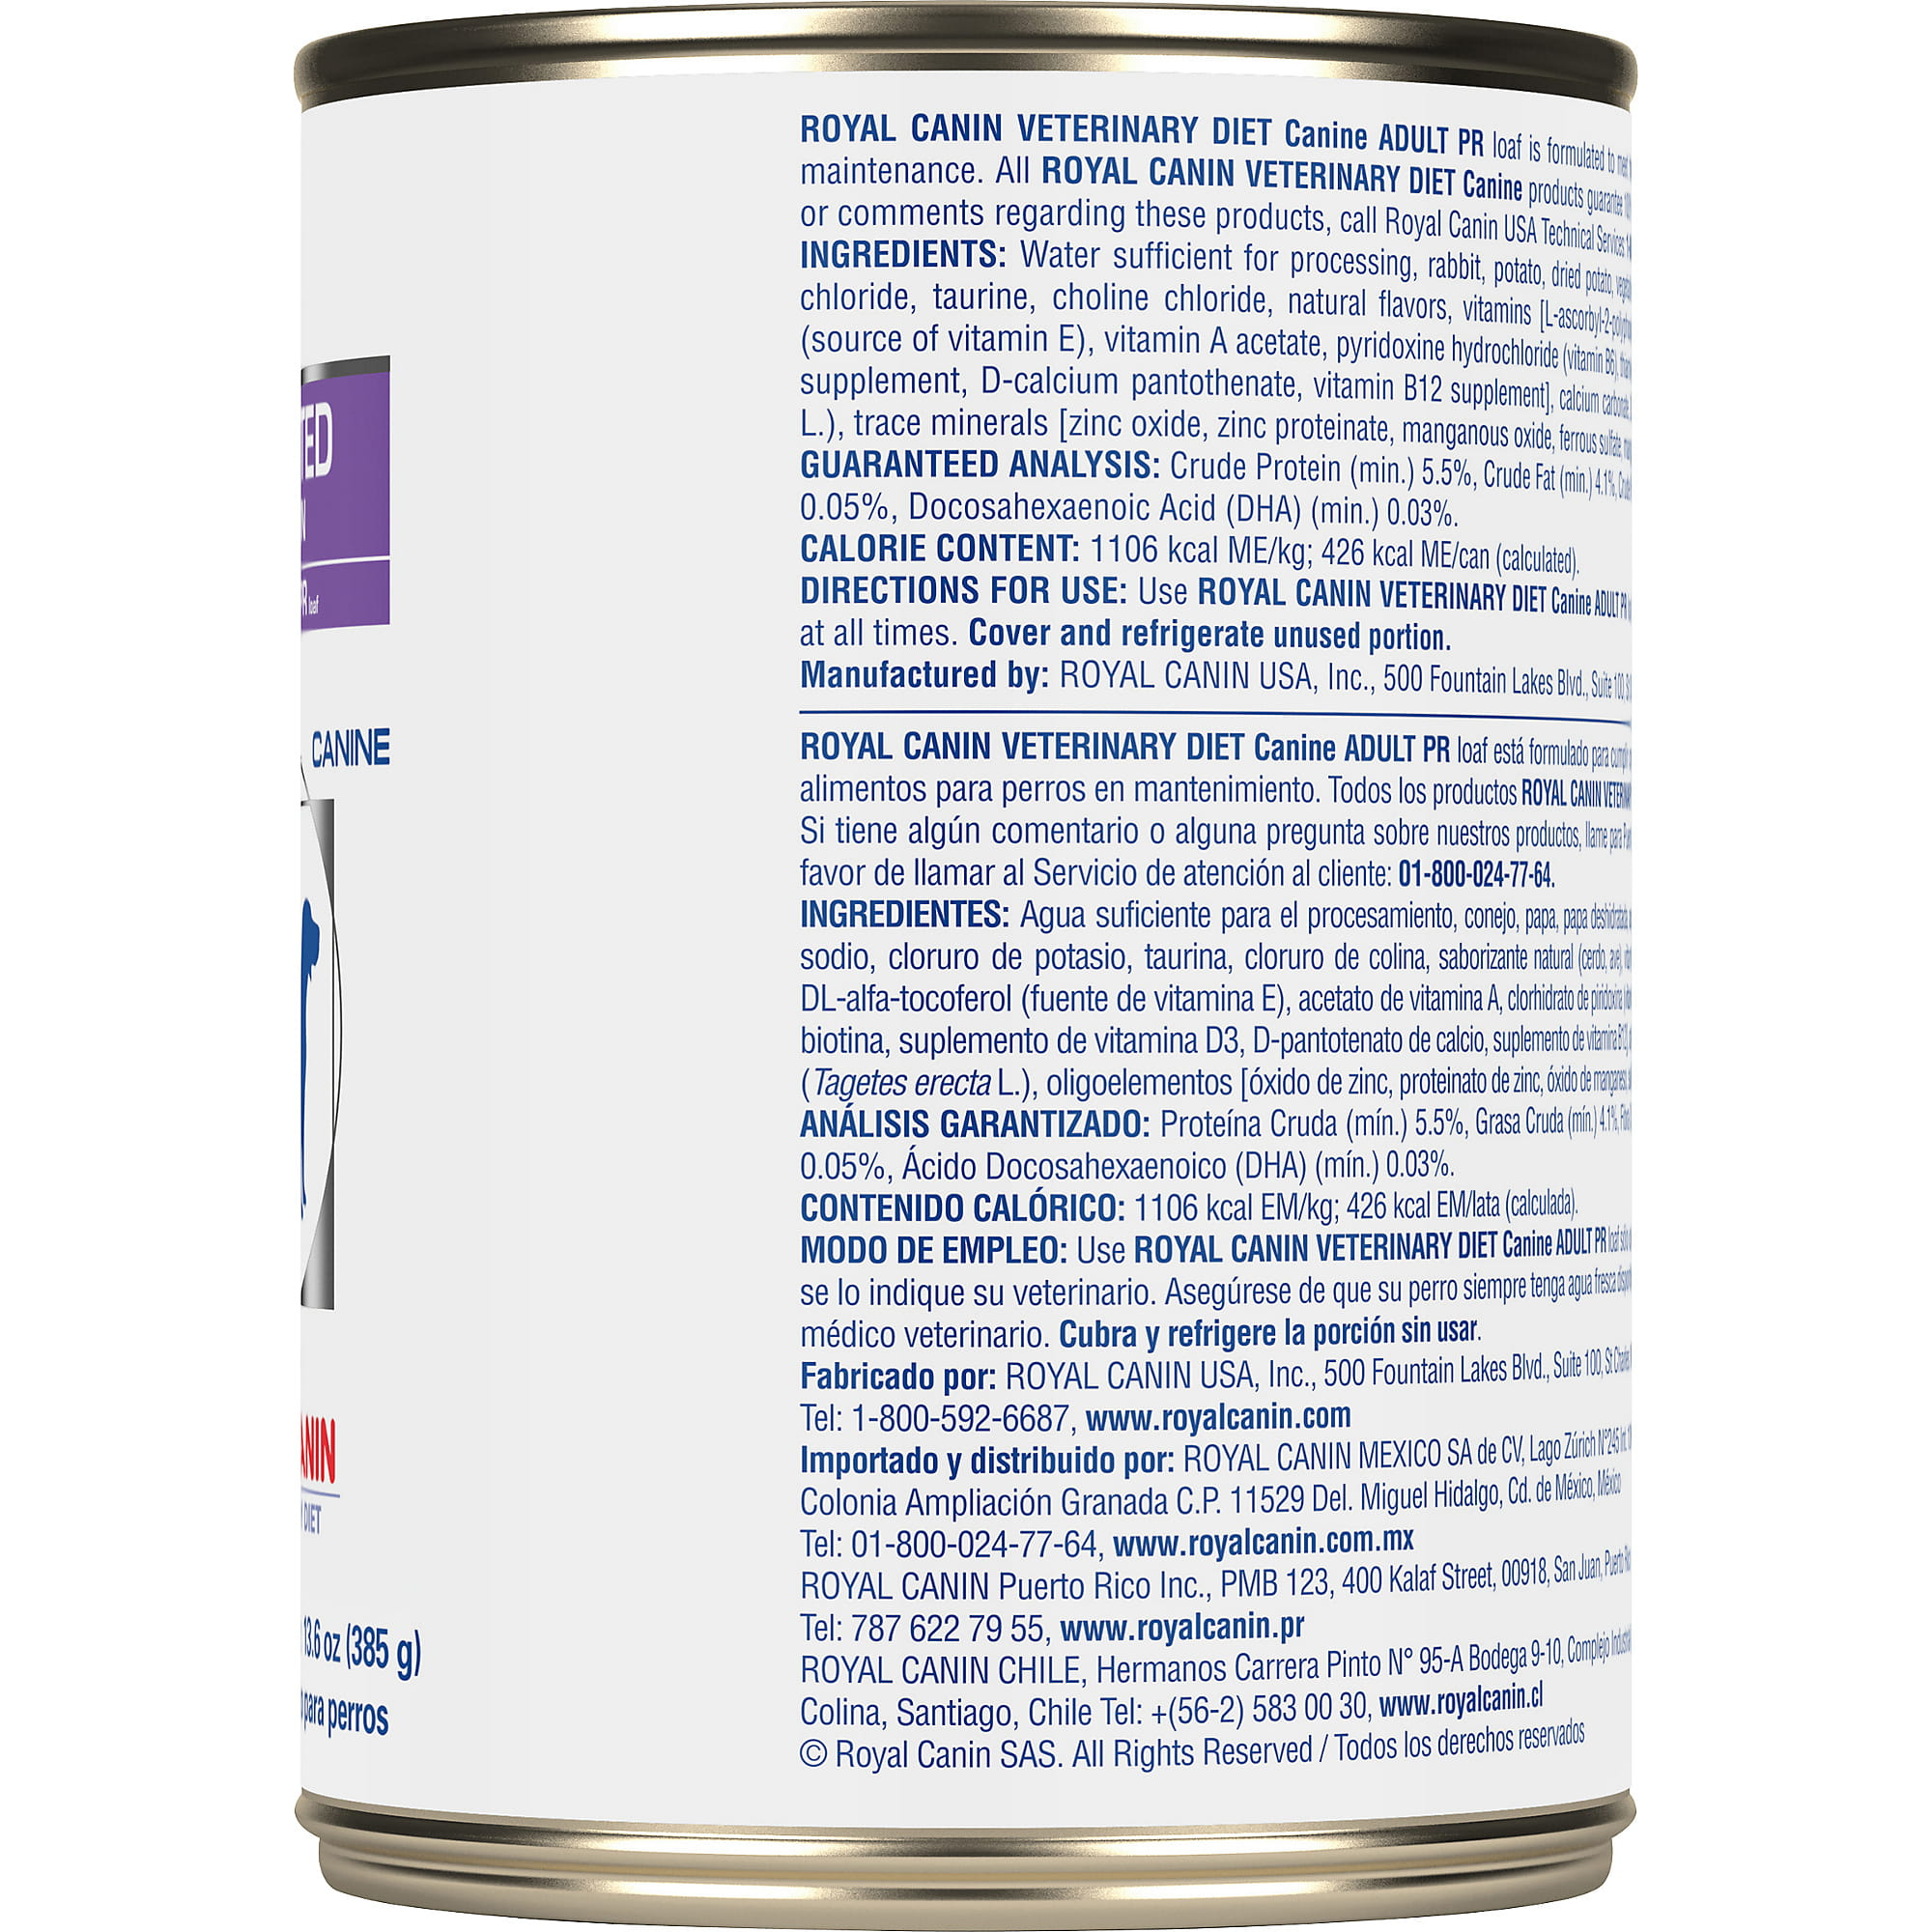 Royal Canin Veterinary Diet Canine Selected Protein Adult PR Canned Dog Food